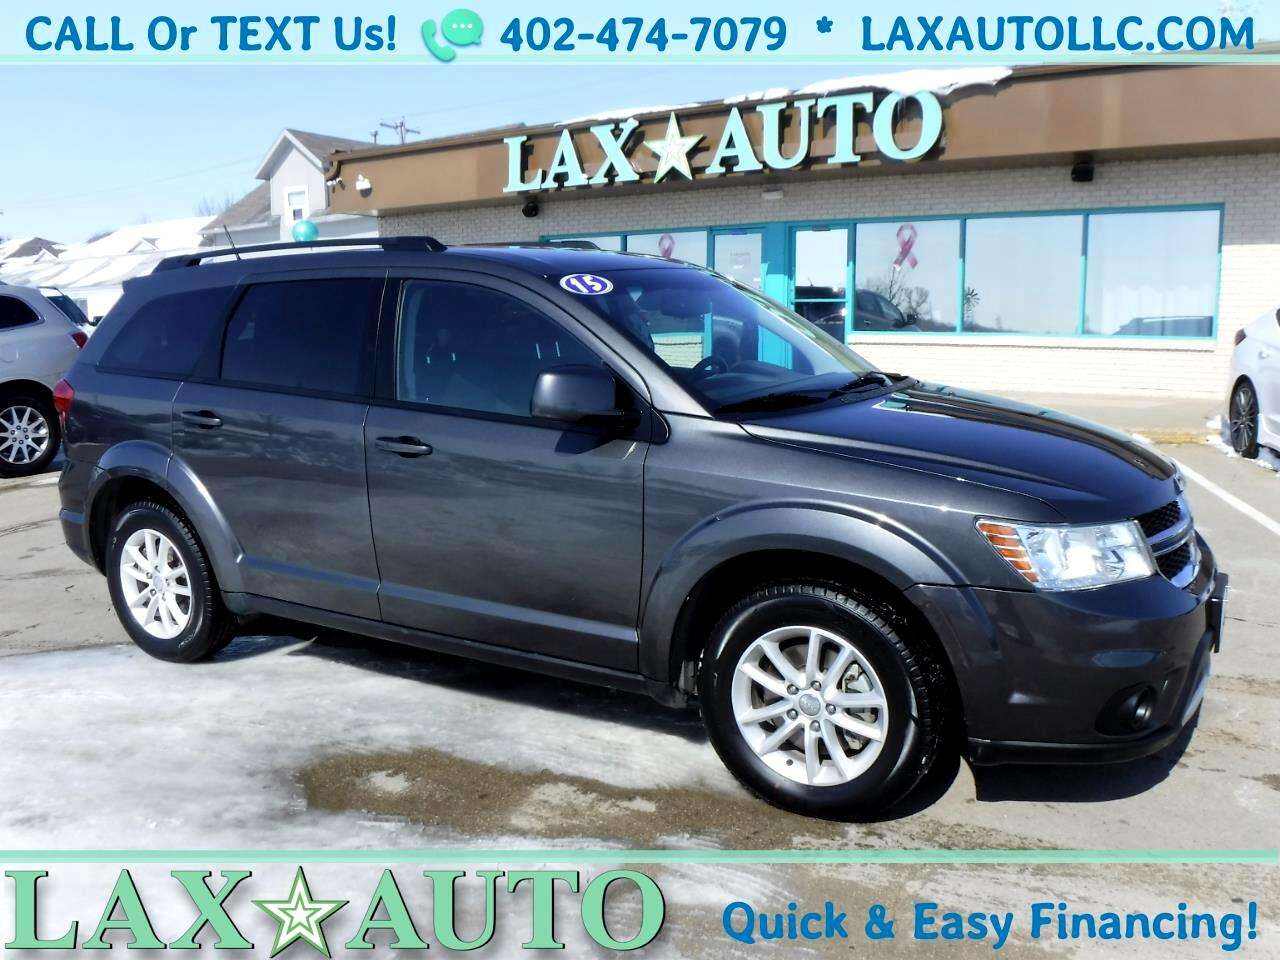 2015 Dodge Journey SXT AWD * 64k Miles! 3rd Row! Push Start!